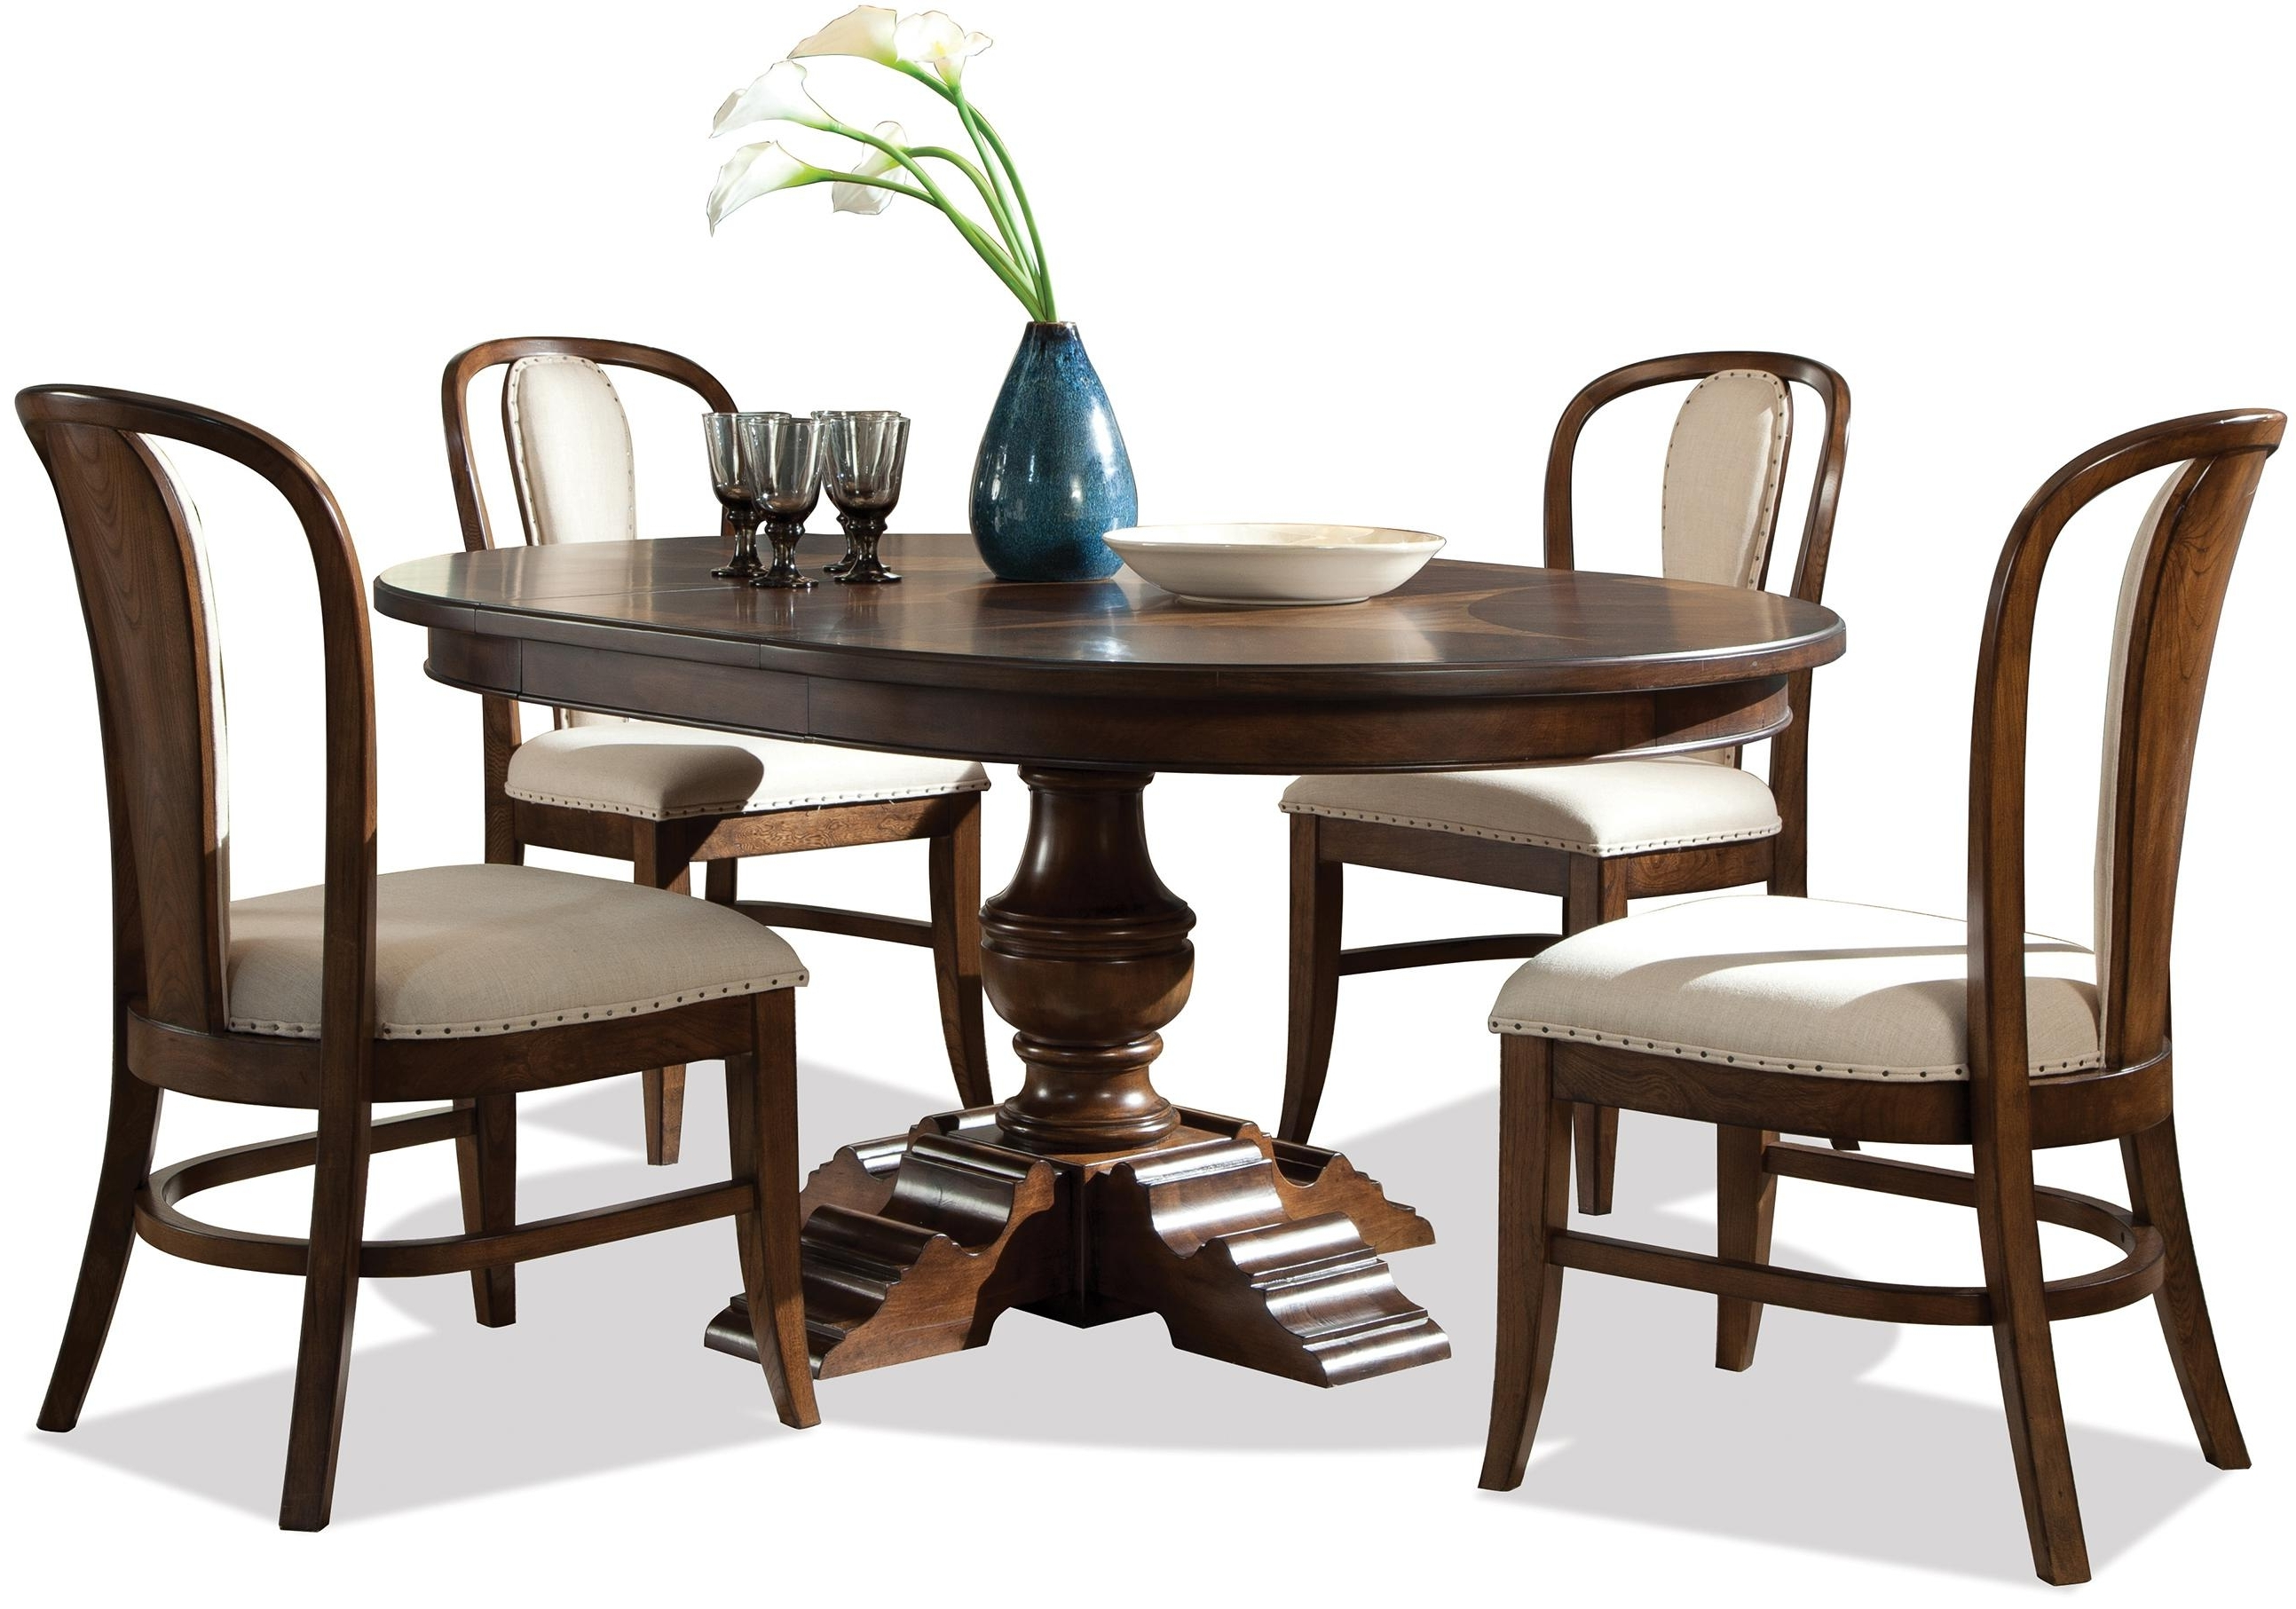 Riverside Furniture Lawrenceville 5 Piece Round Table & Bow Back Within Widely Used Caira Black 5 Piece Round Dining Sets With Diamond Back Side Chairs (View 4 of 25)